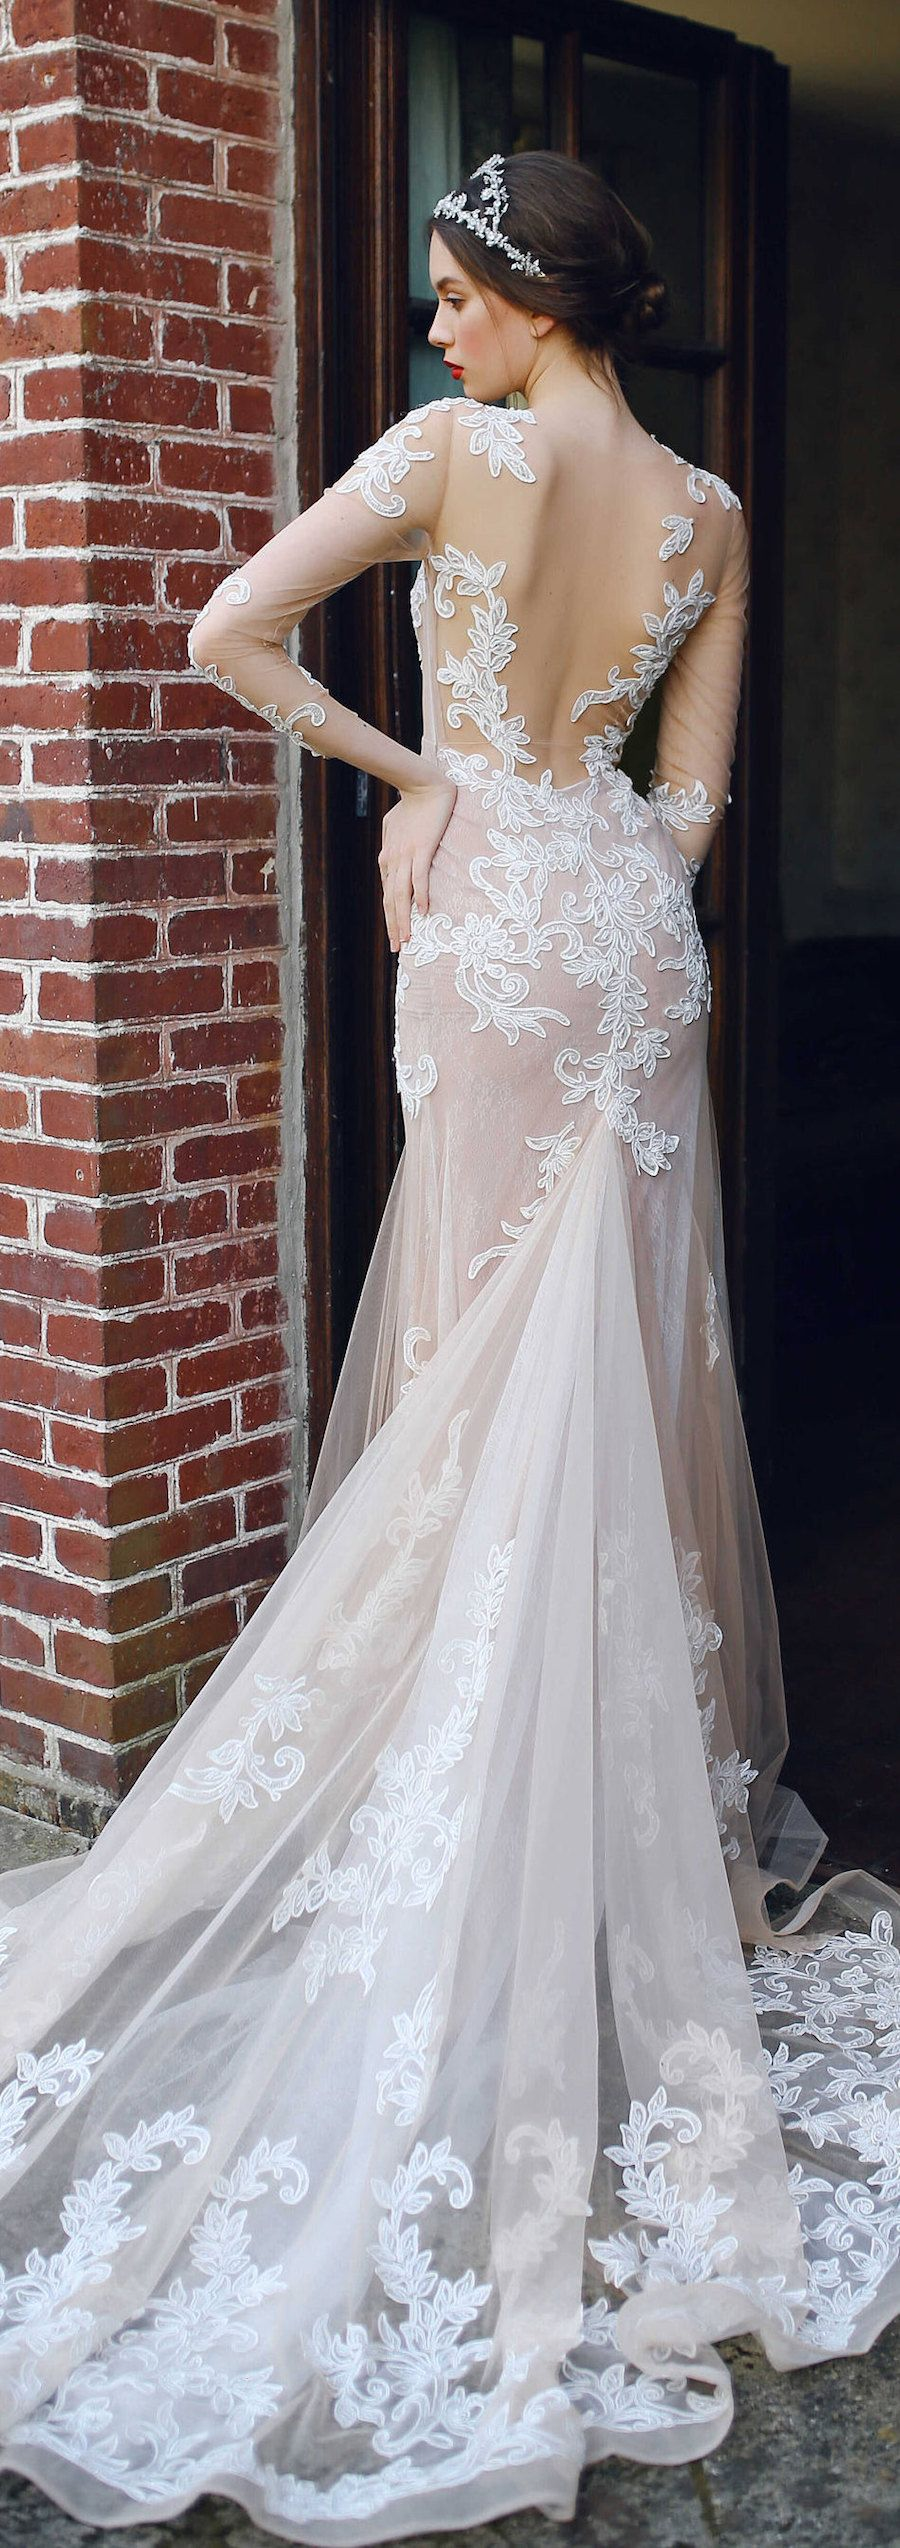 fabulous wedding dresses you can buy on etsy